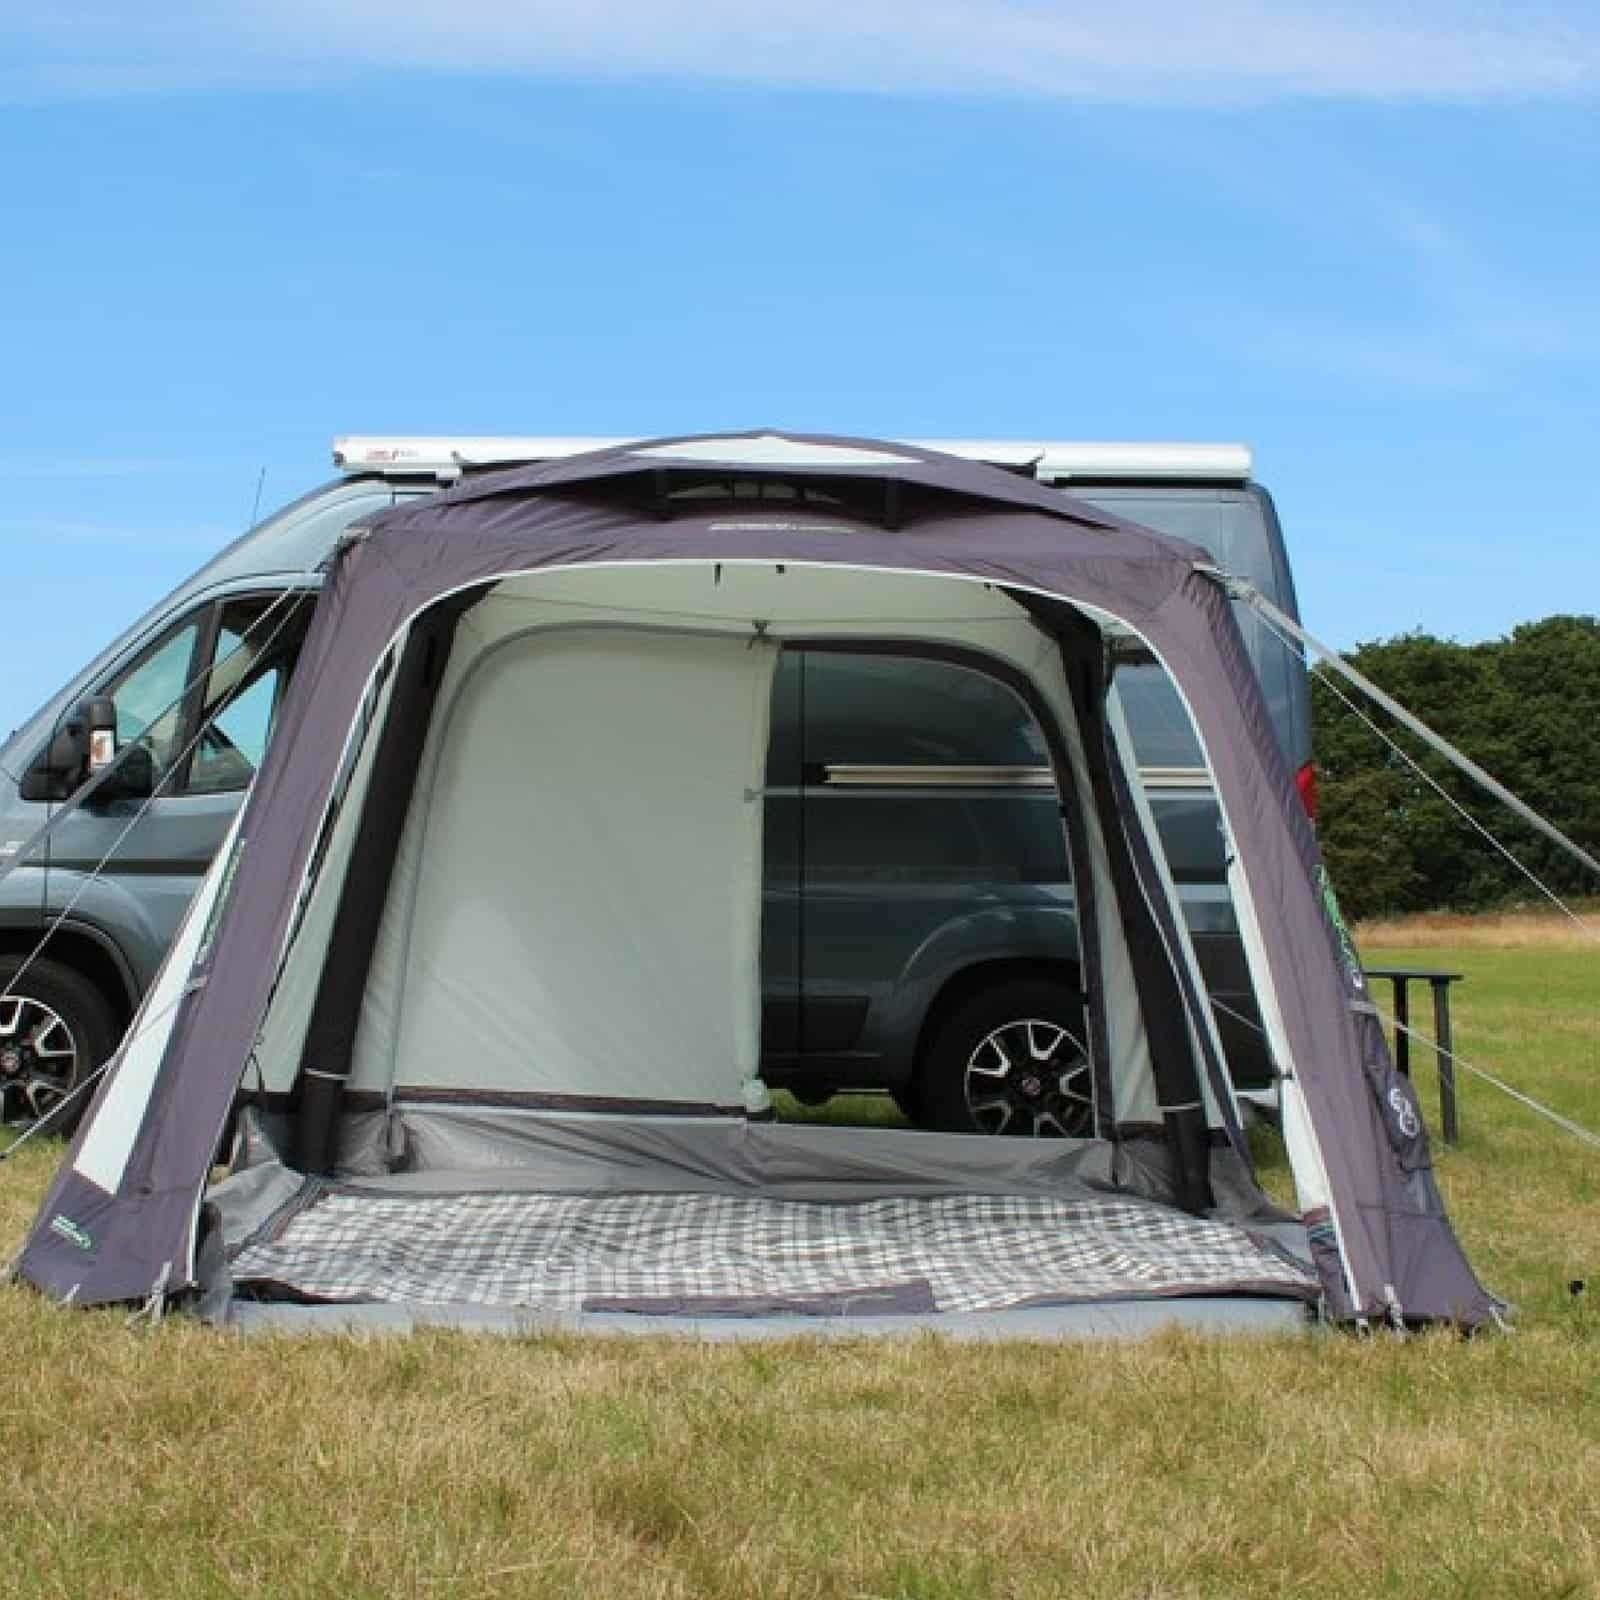 2018 Outdoor Revolution Movelite T1 Airbeam Driveaway Awning on Tall Campervan